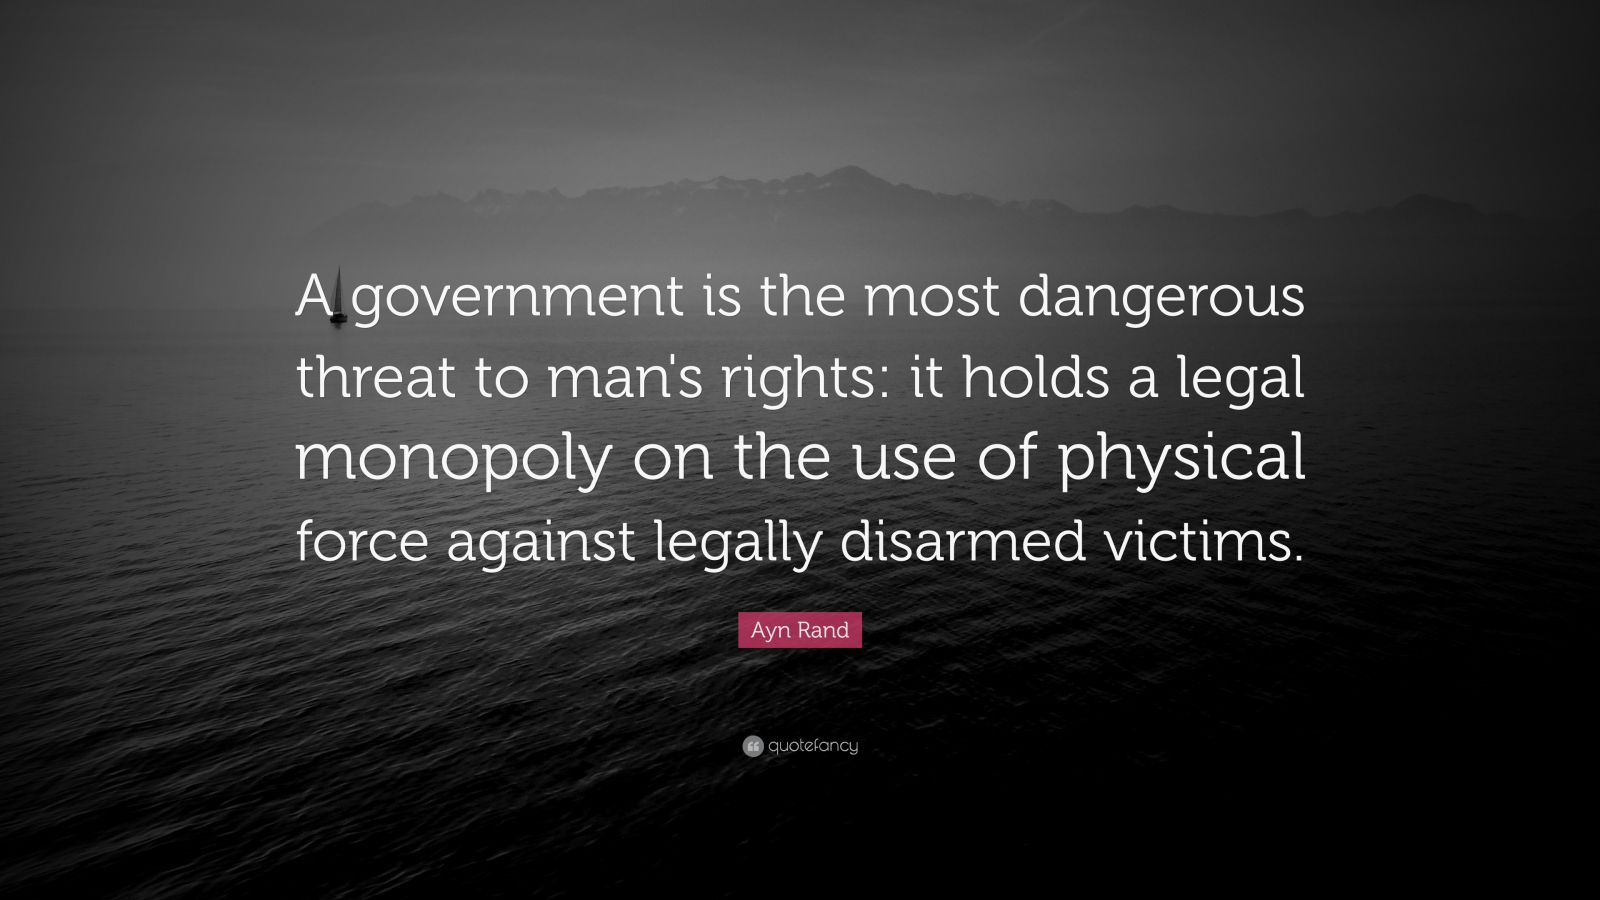 William Shakespeare Love Quotes Wallpaper Ayn Rand Quote A Government Is The Most Dangerous Threat